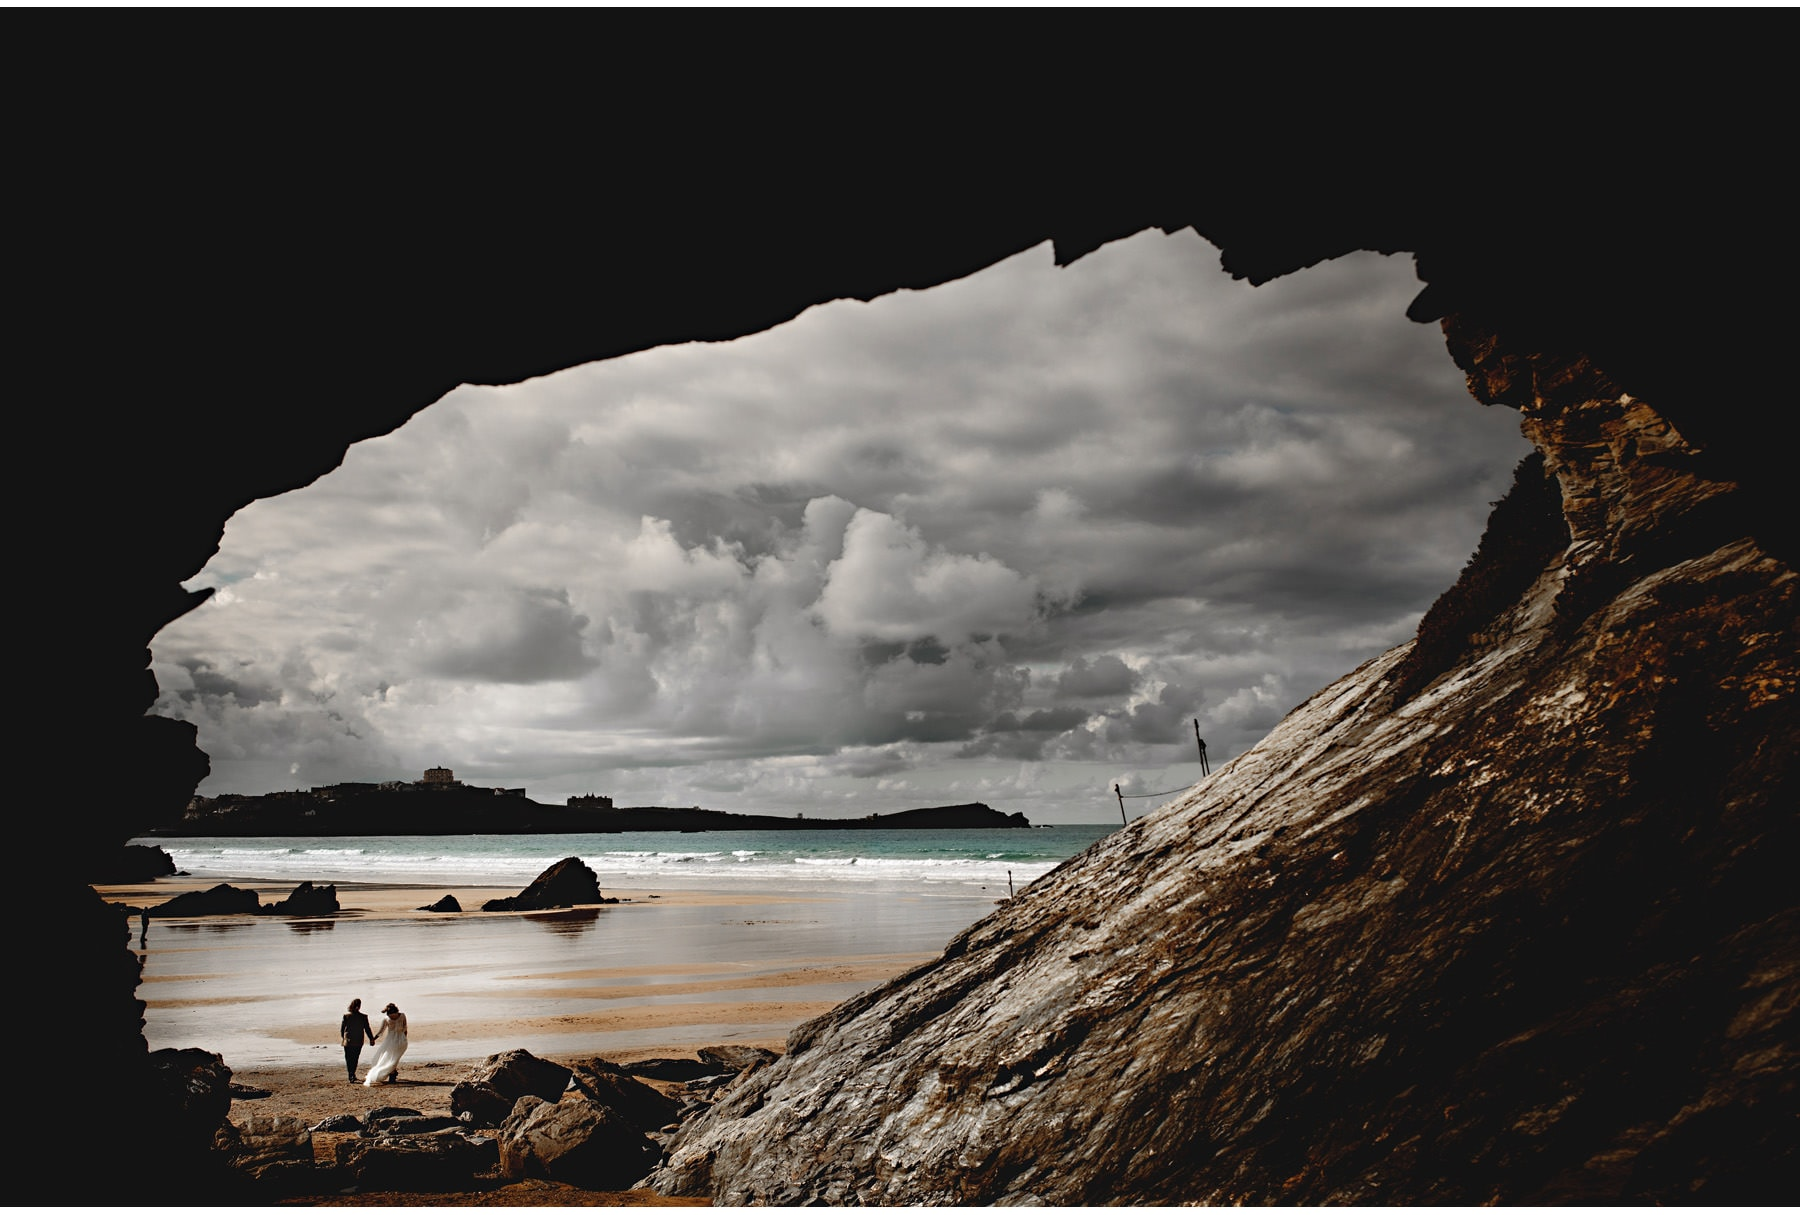 the bride and groom walking on the beach taken from inside a cave